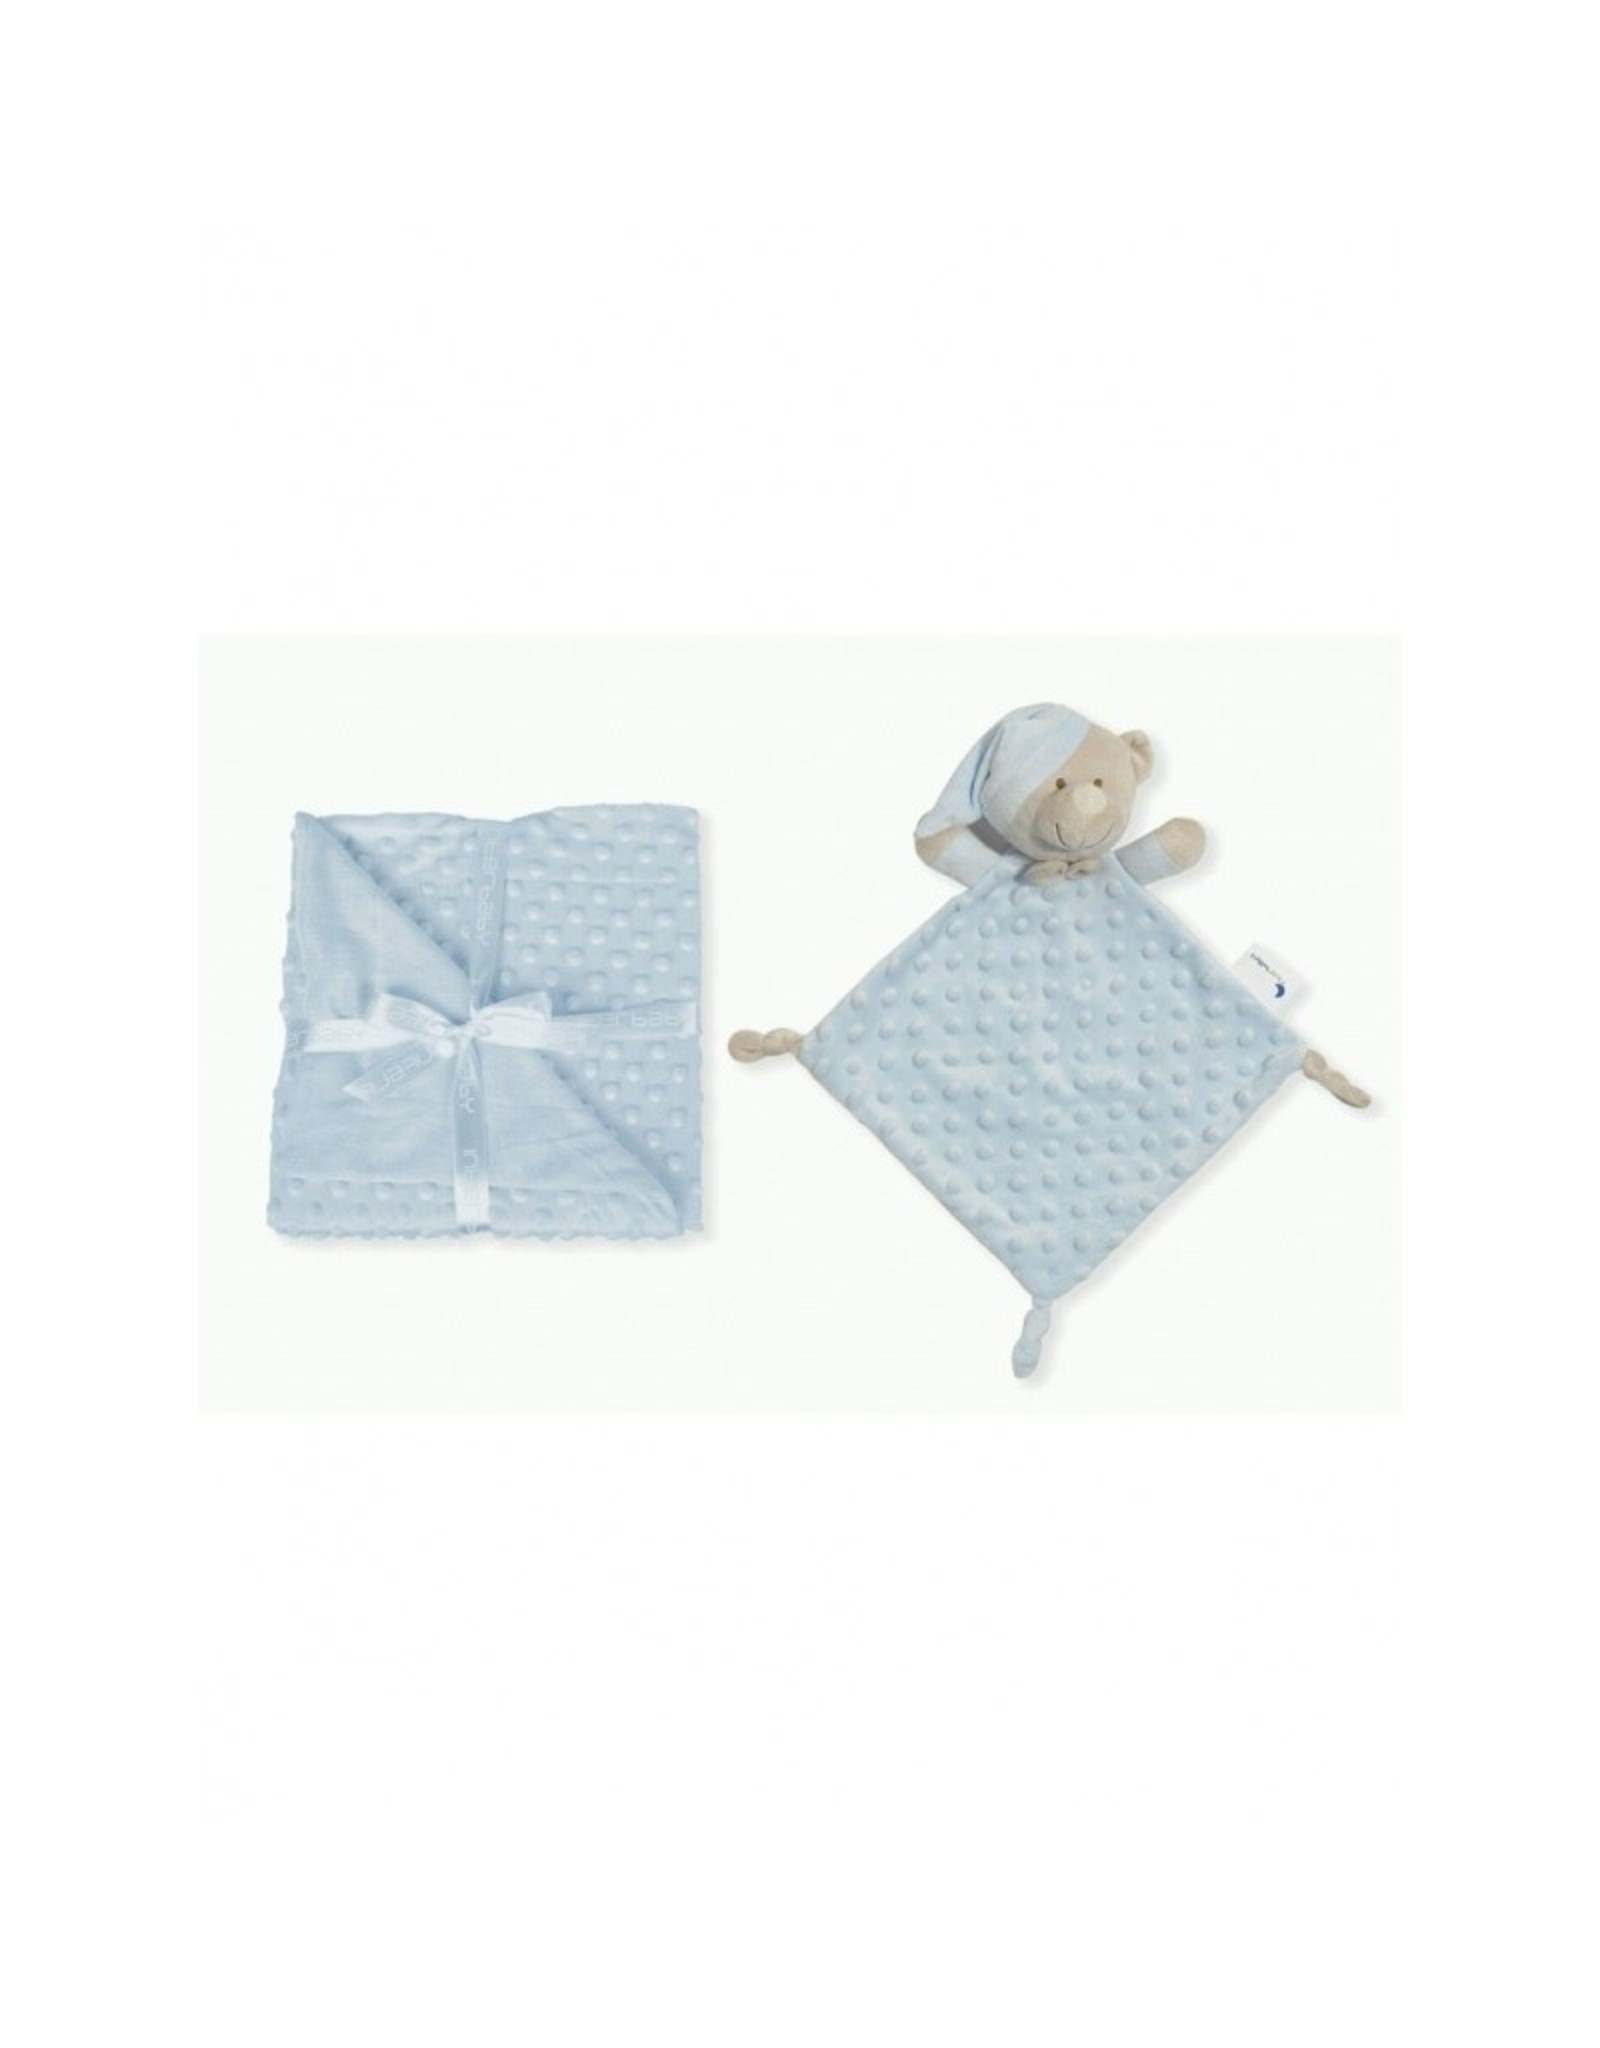 Babydeken en knuffeldoek ''Inter'' Blue